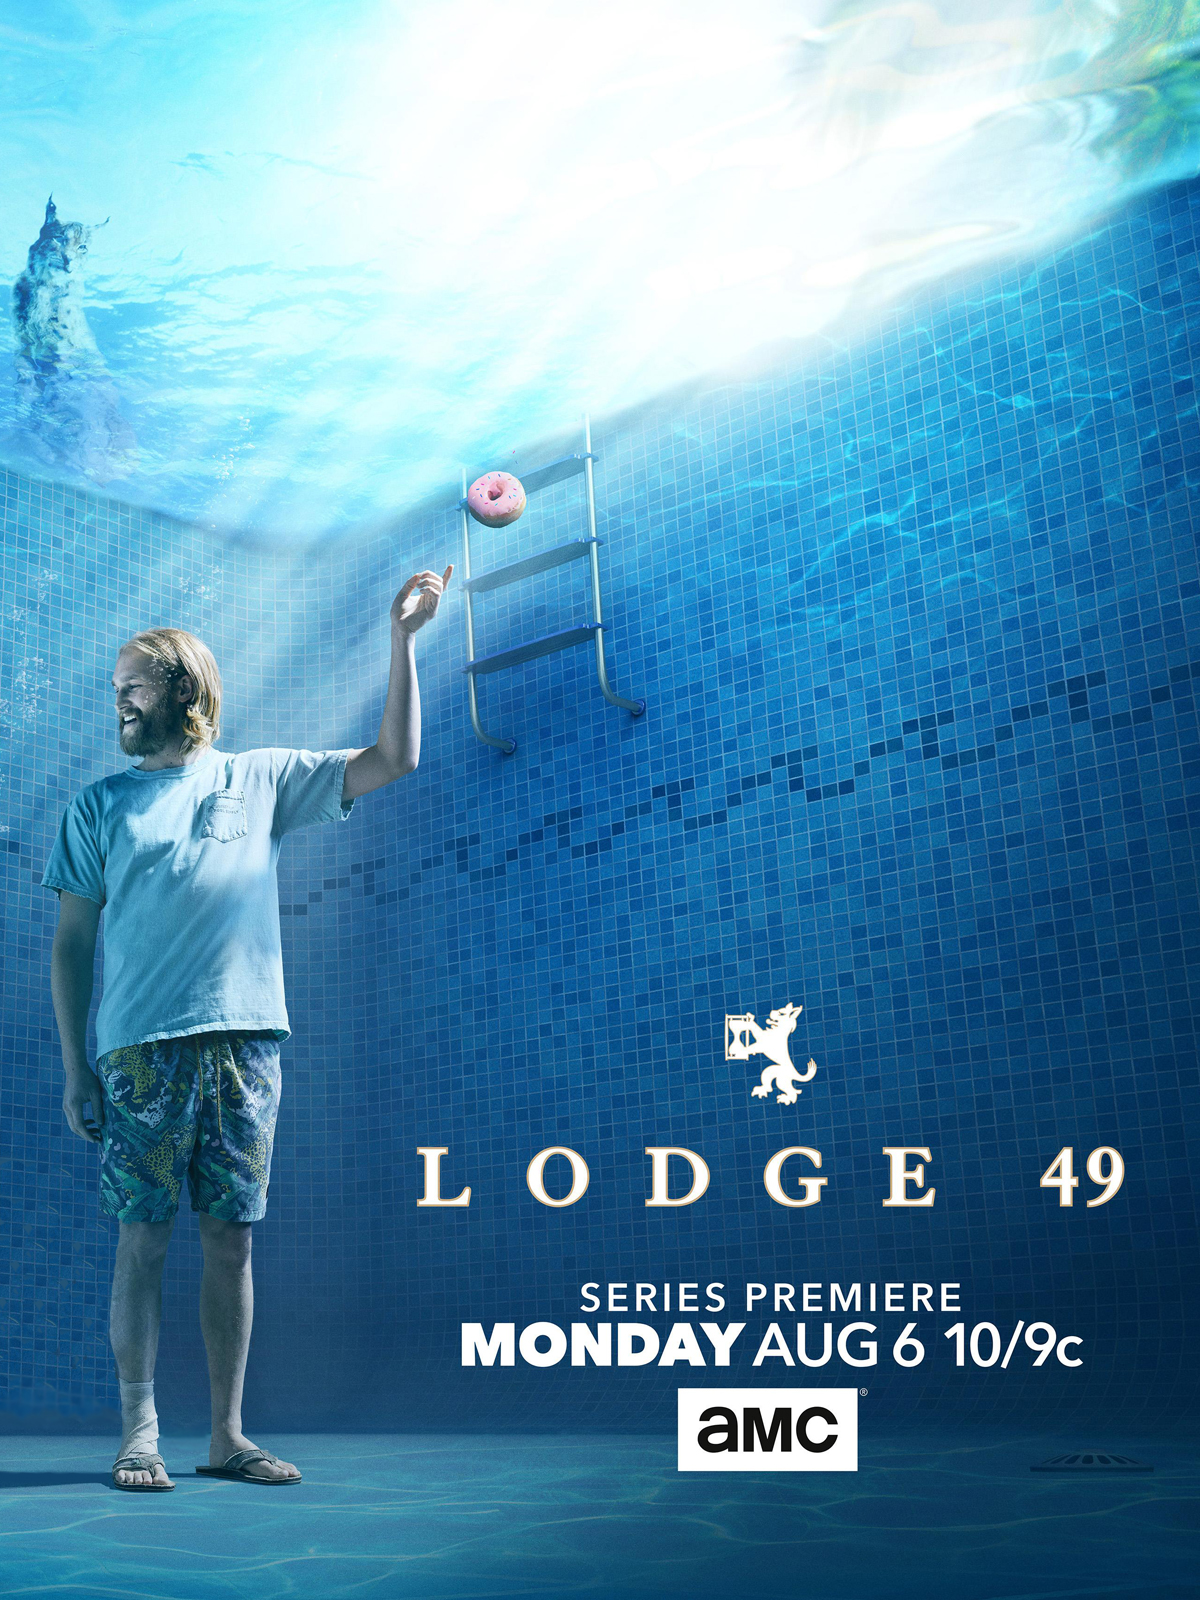 Telecharger Lodge 49- Saison 1 [COMPLETE] [08/08] FRENCH | Qualité HD 720p